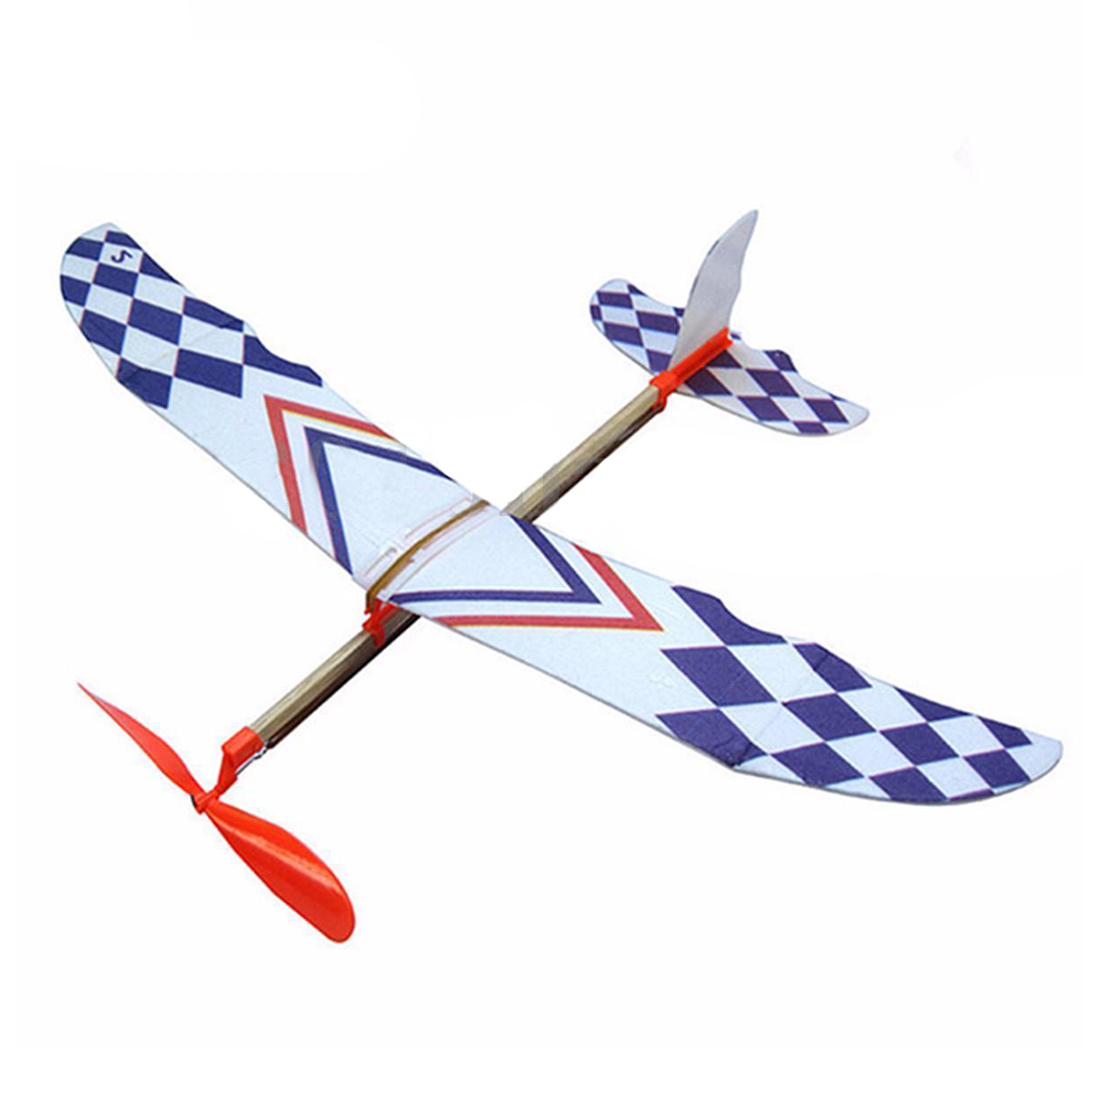 все цены на HOT SALE Elastic Rubber Band Powered DIY Foam Plane Model Kit Aircraft Educational Toy